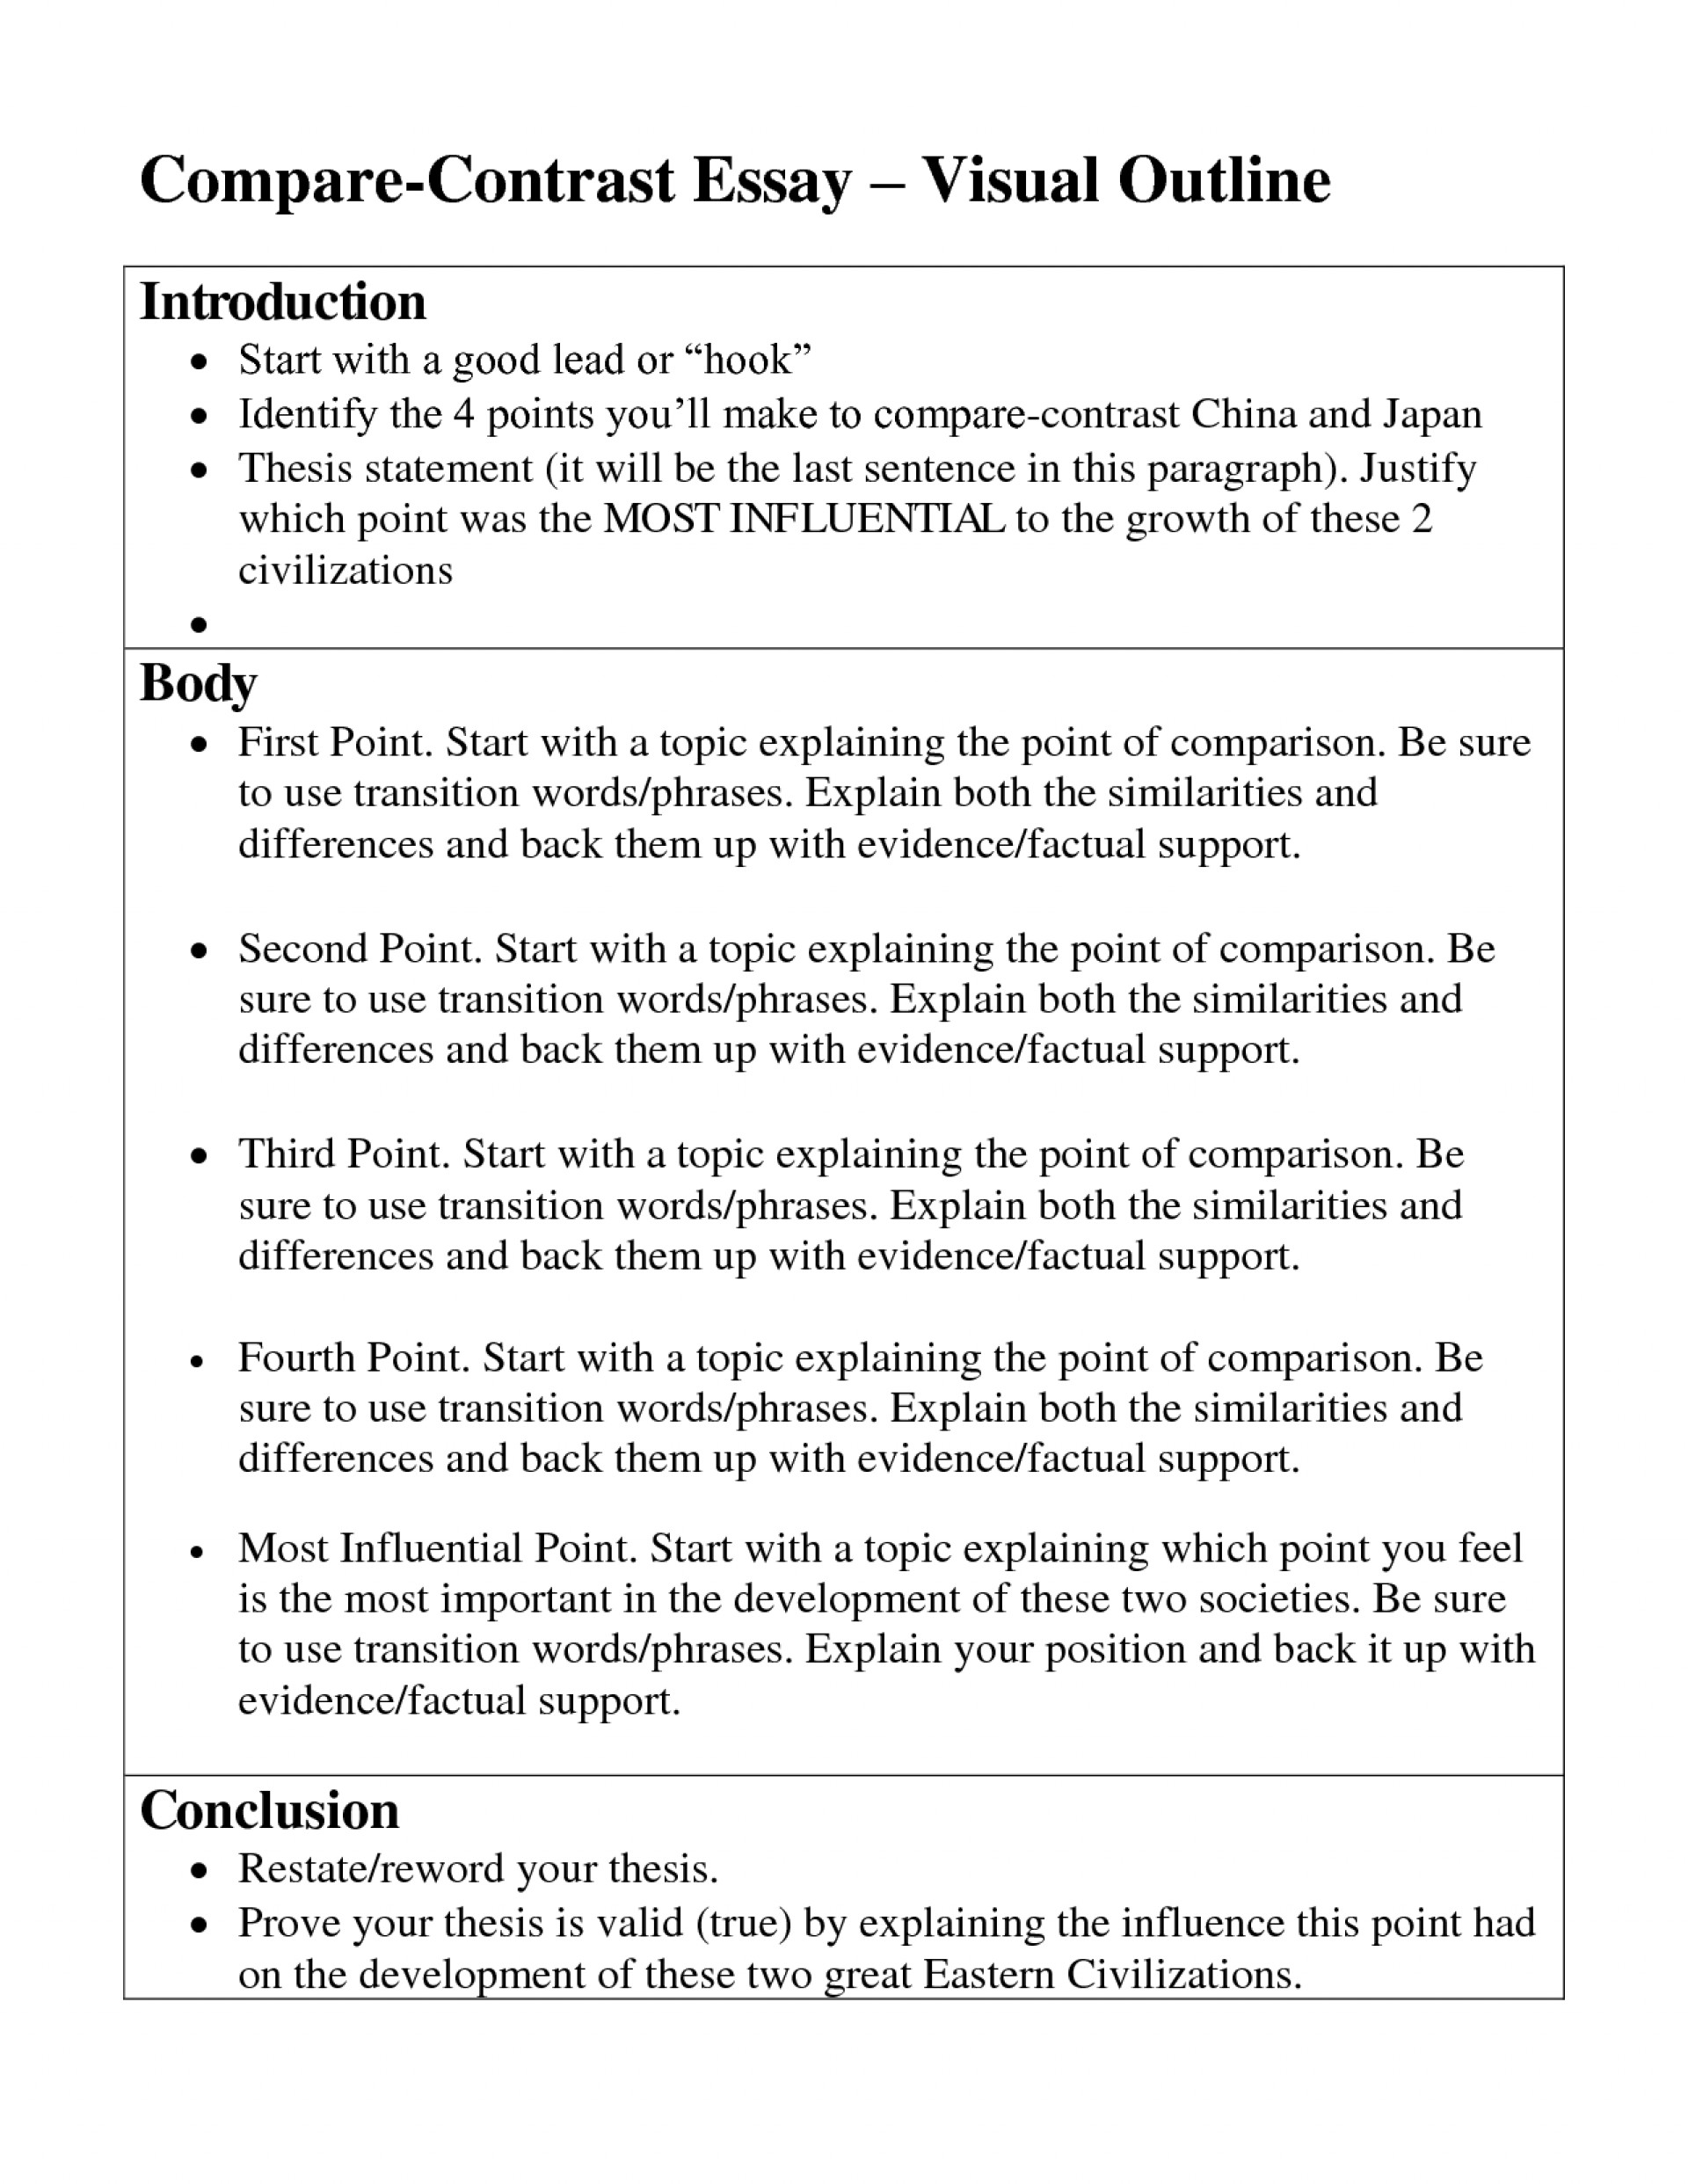 017 Compare And Contrast Essay Frightening Topics Outline Doc Sample 4th Grade 1920